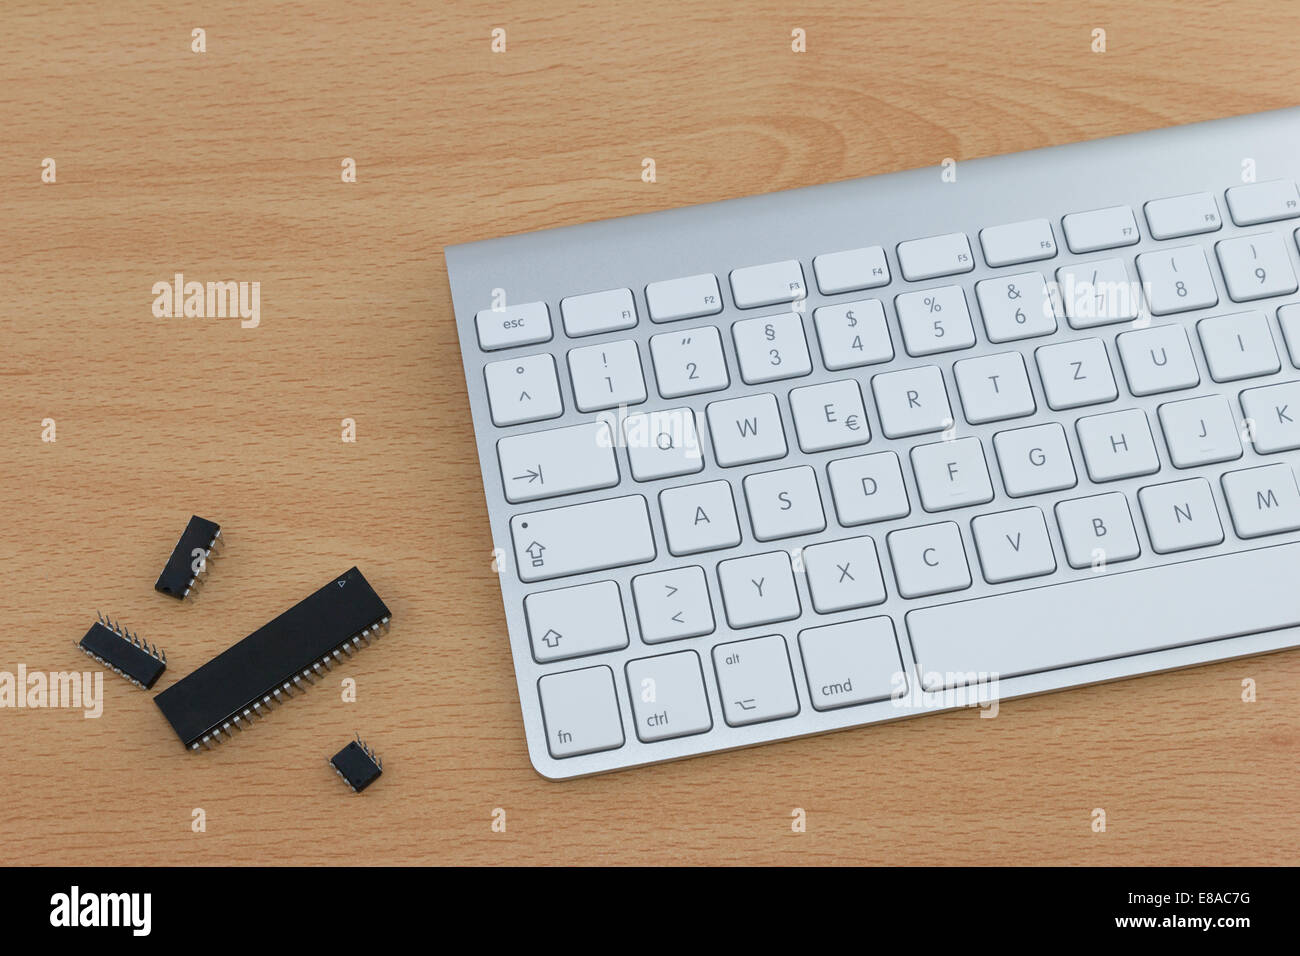 Metal Keyboard With White Keys And Four Computer Parts On Office Desk Stock Photo Alamy